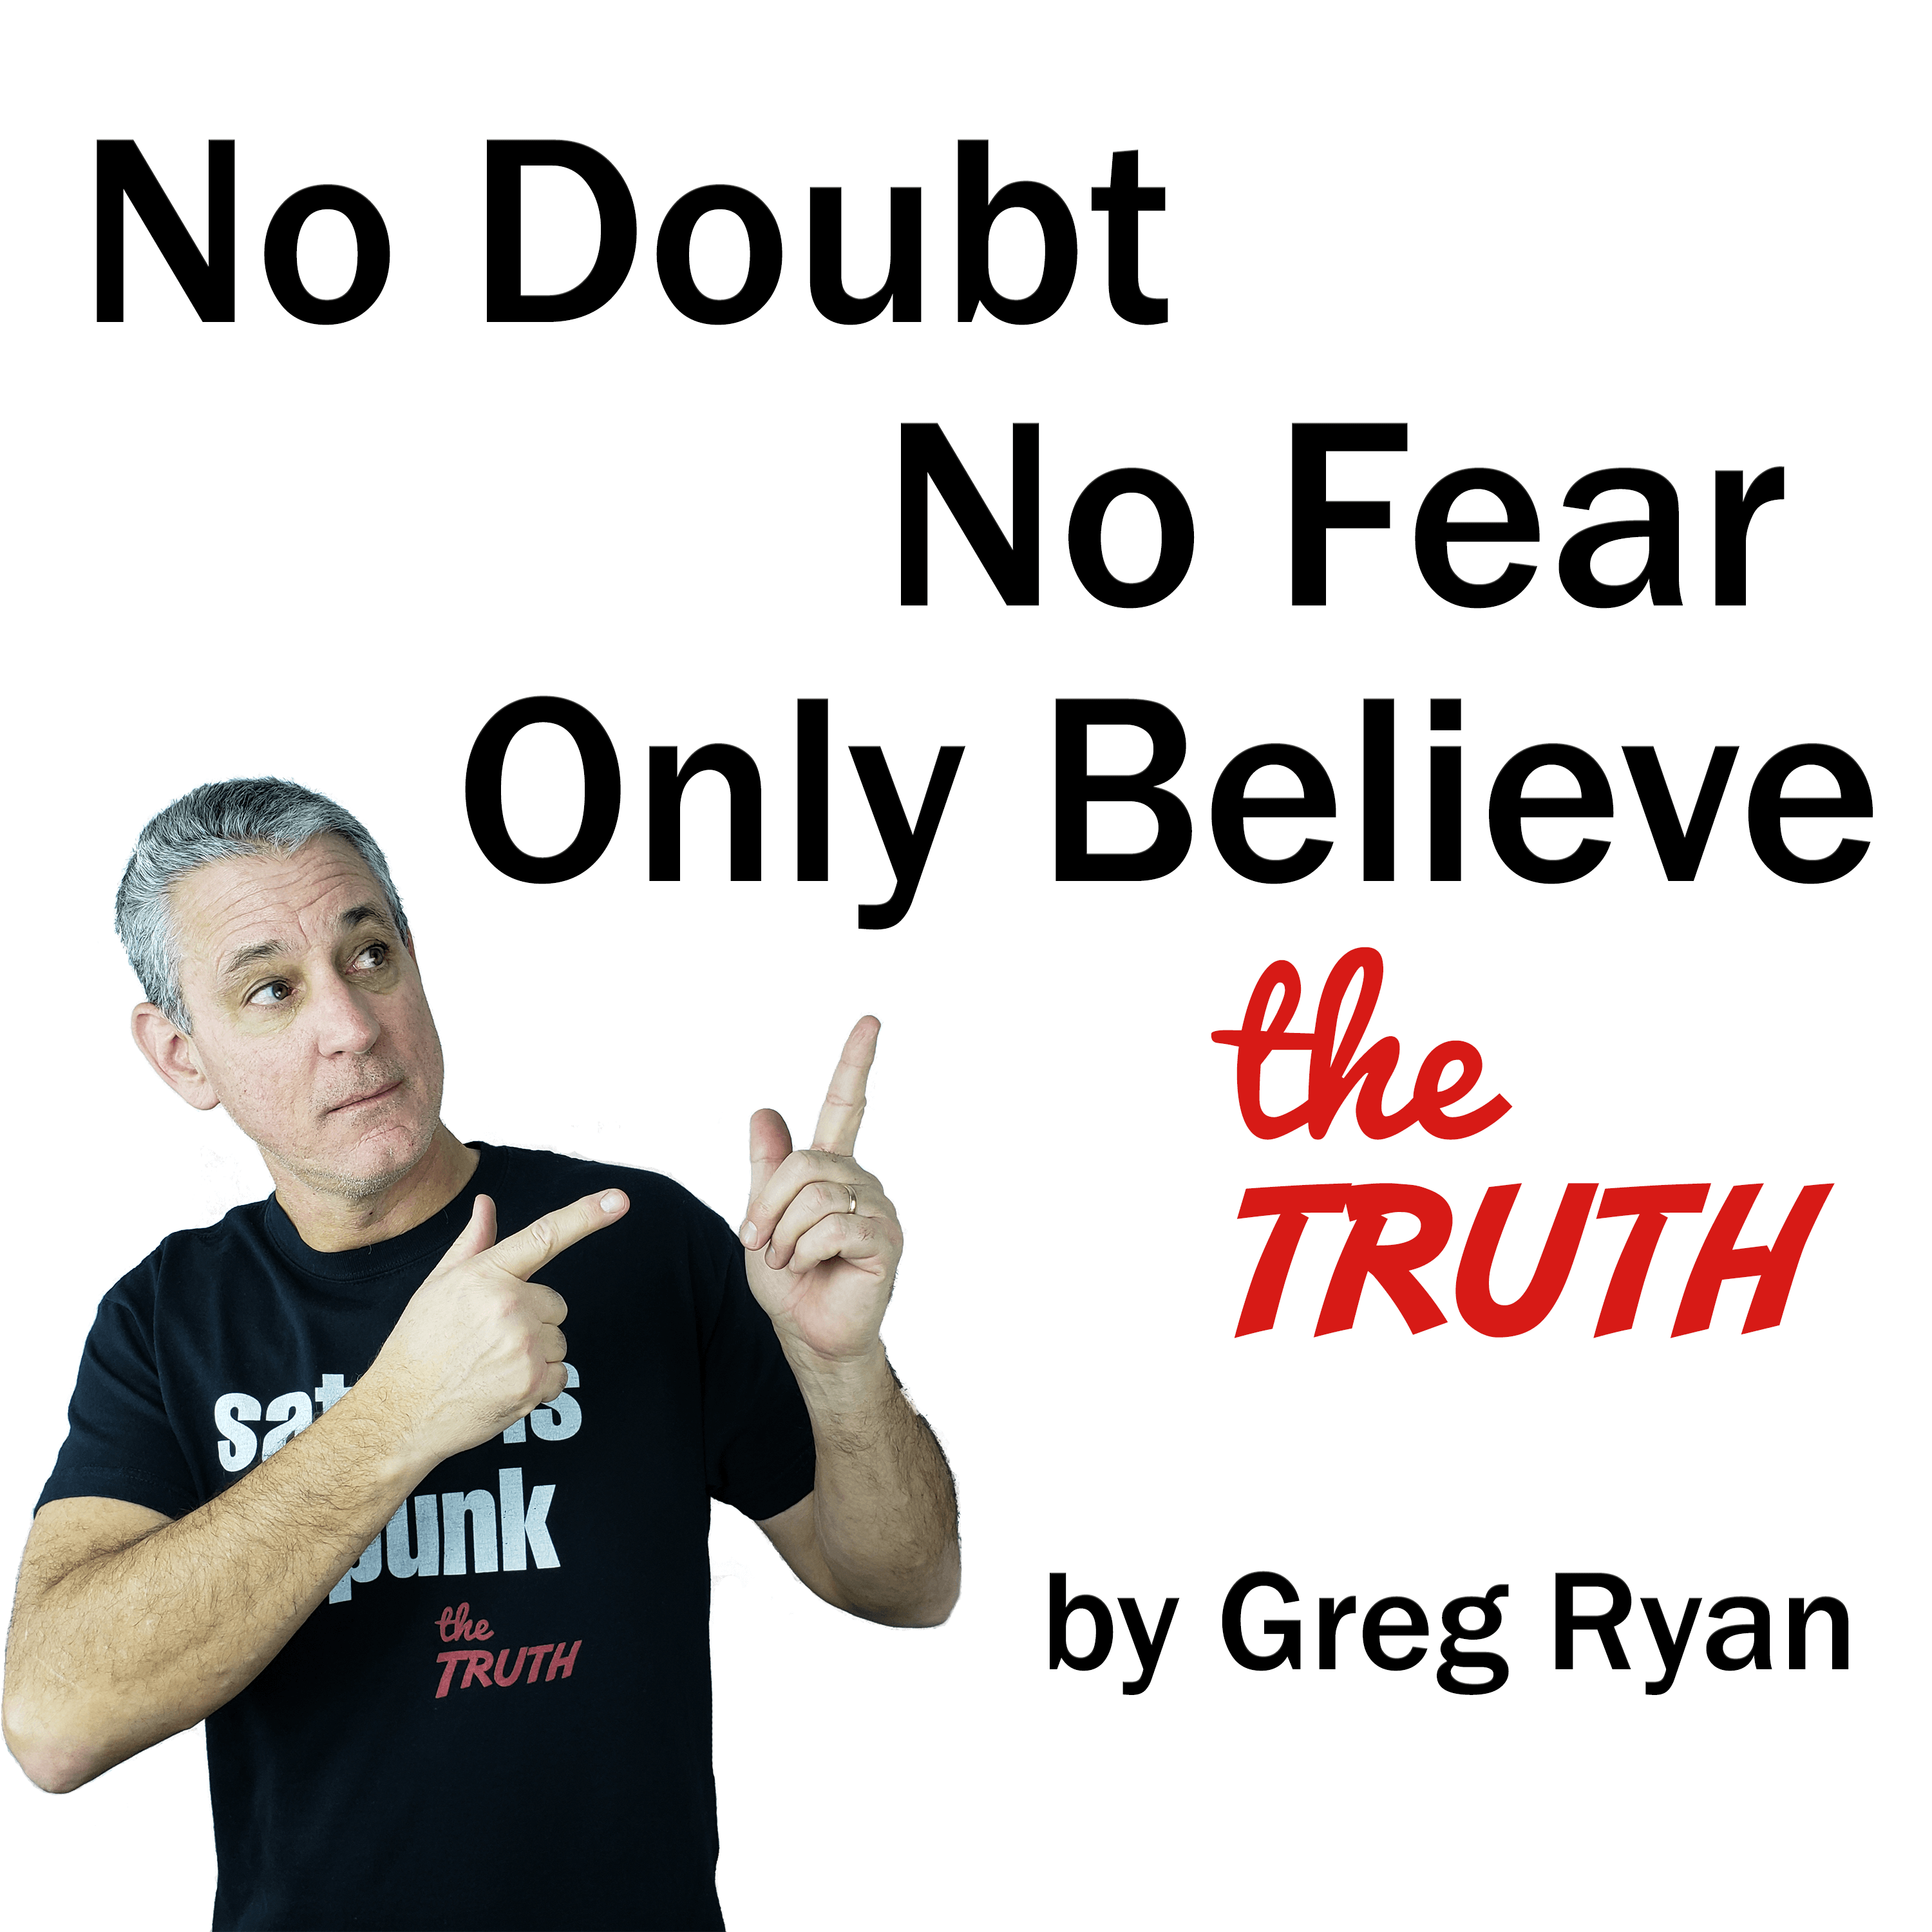 No Doubt No Fear Only Believe